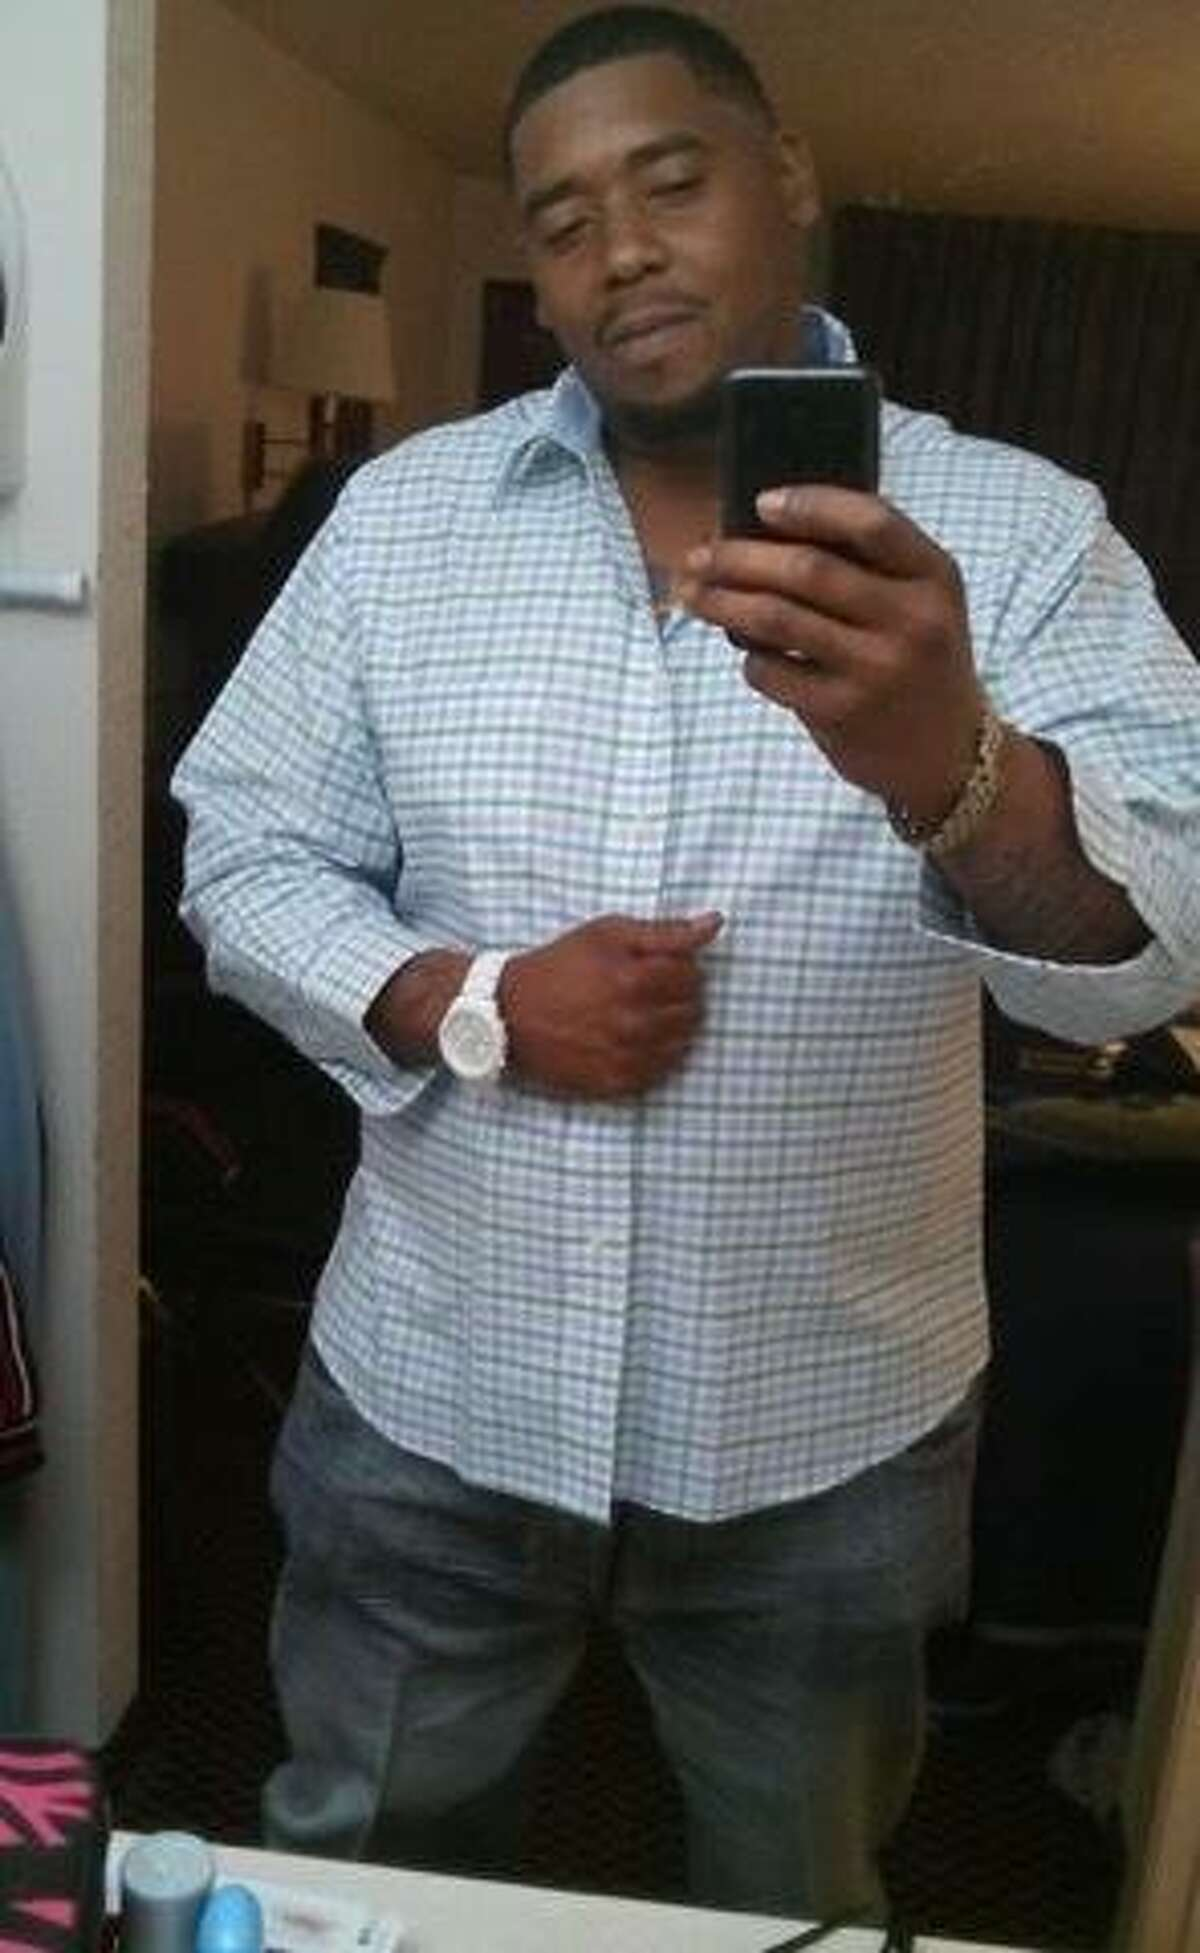 Dontriel Jovan Coates, 37, died July 14 at Bayside Community Hospital after suffering from a medical emergency in the Chambers County Jail. His family is seeking answers and justice in the unexpected death of the father of two young children. Photos courtesy of his mother, Cherrie Coates.